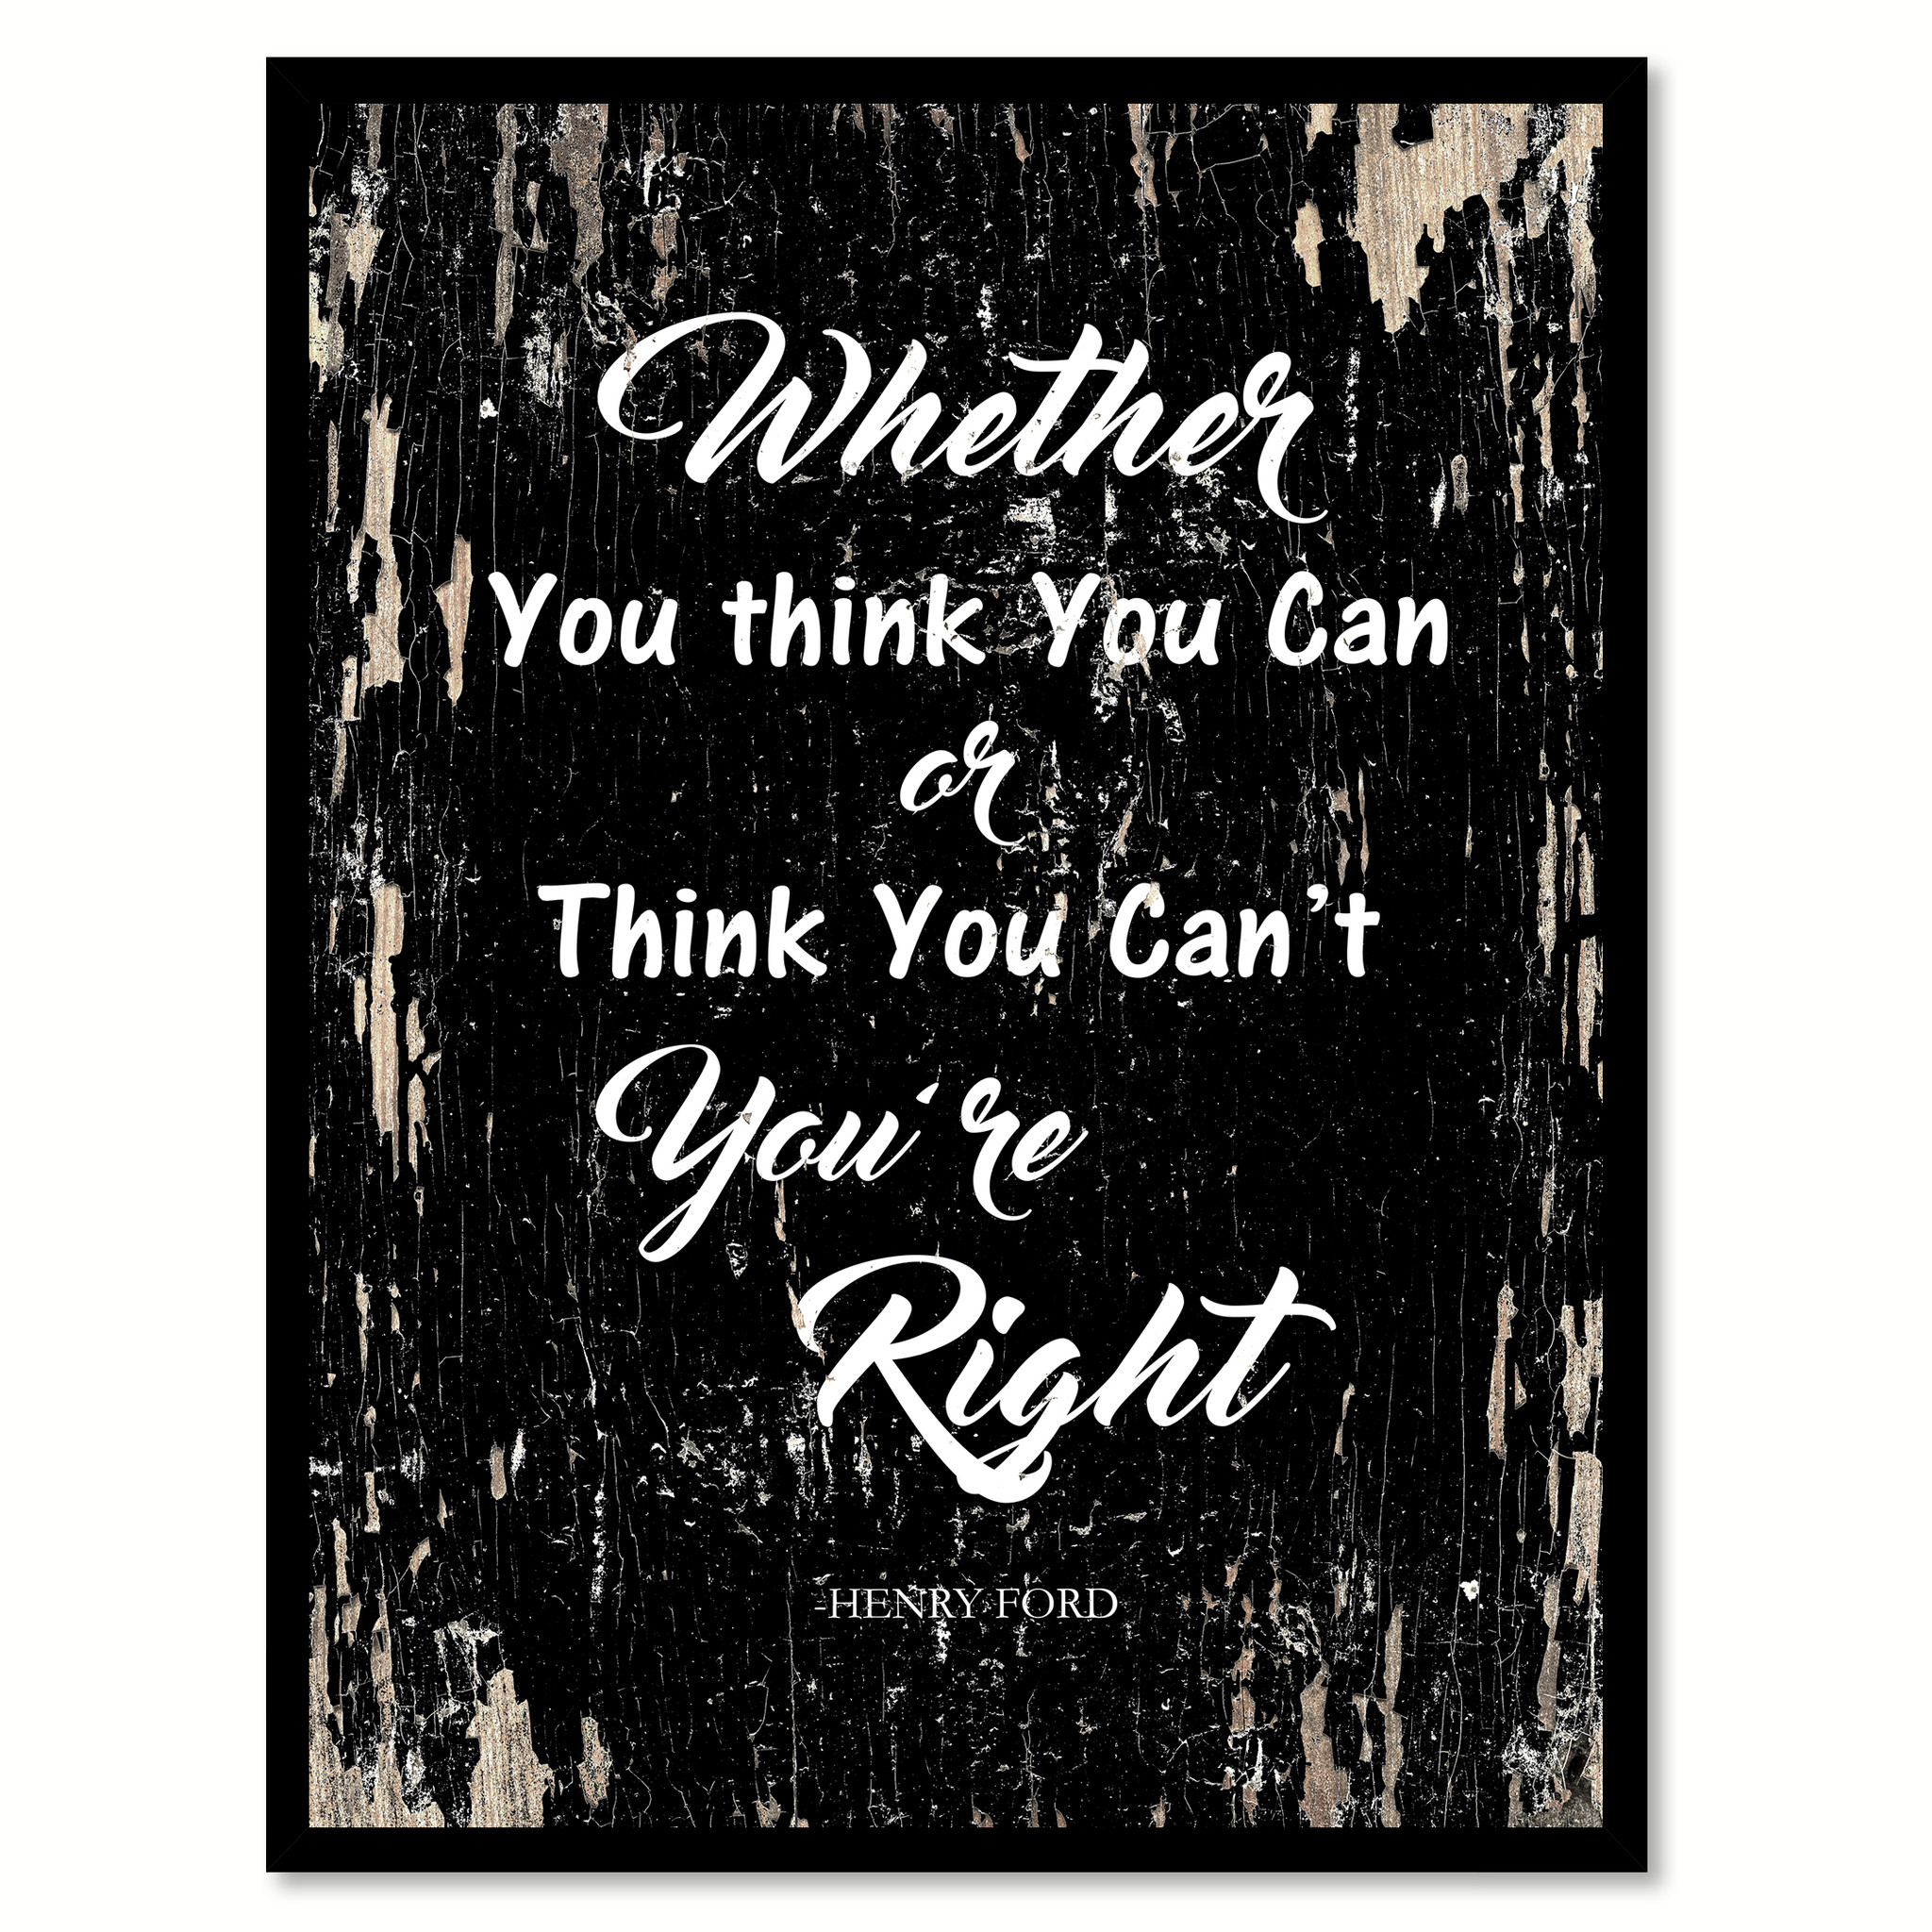 "Whether You Think You Can Or Think You Can't You Are Right Inspirational Quote Saying Gifts Ideas Home Decor Wall Art - 7""x9\"""